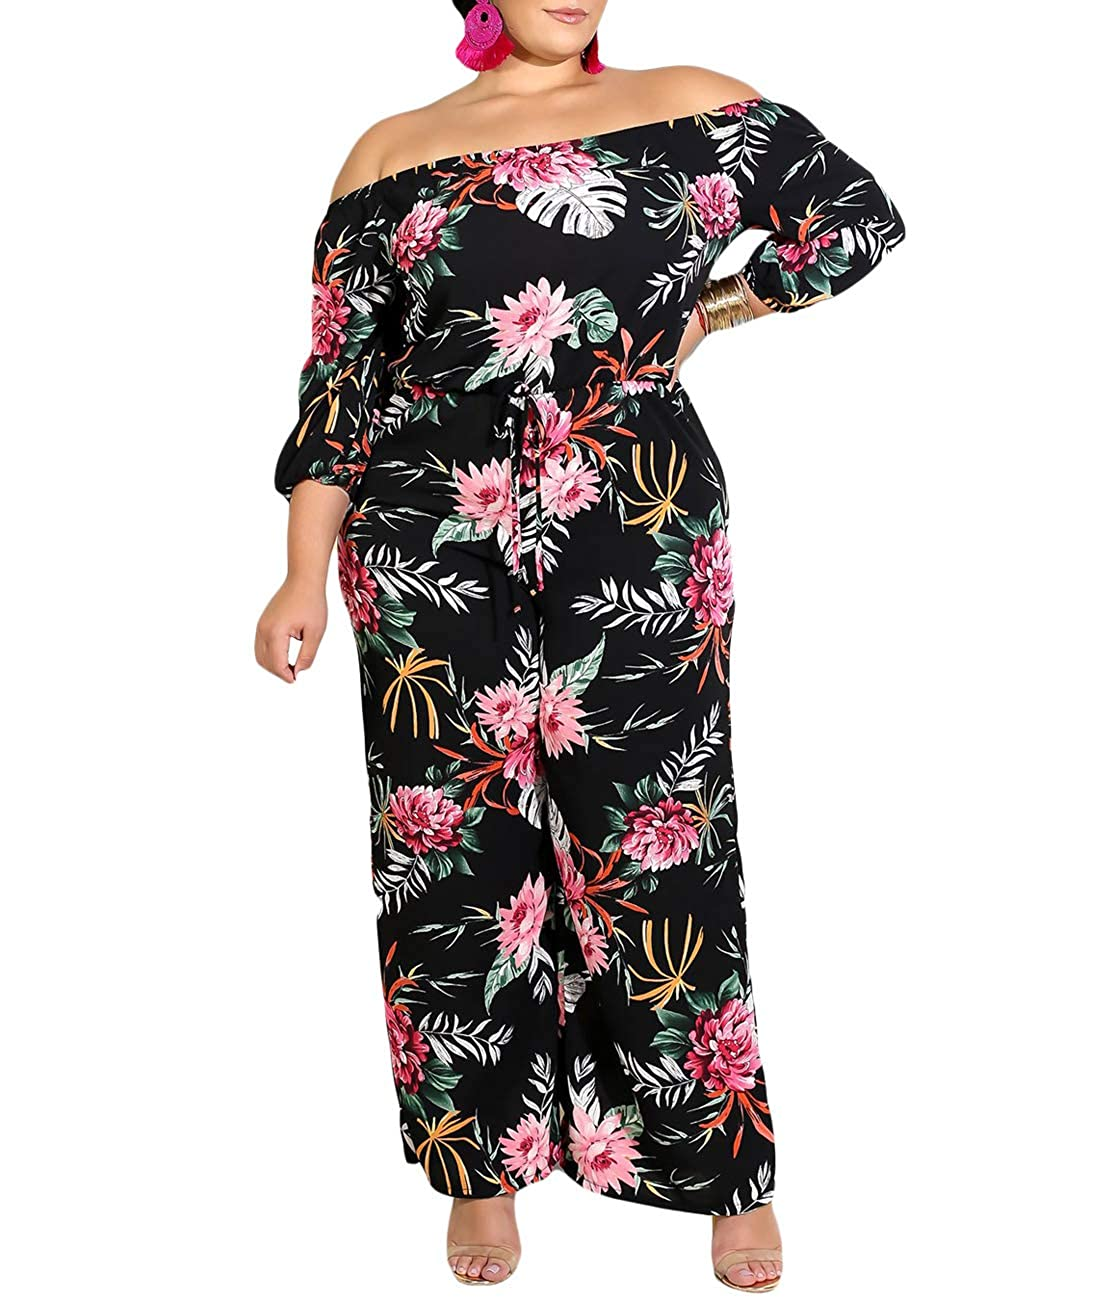 17f23eca92 Amazon.com: Urchics Women Plus Size Sexy Off Shoulder Floral Wide Leg Jumpsuit  Romper: Clothing